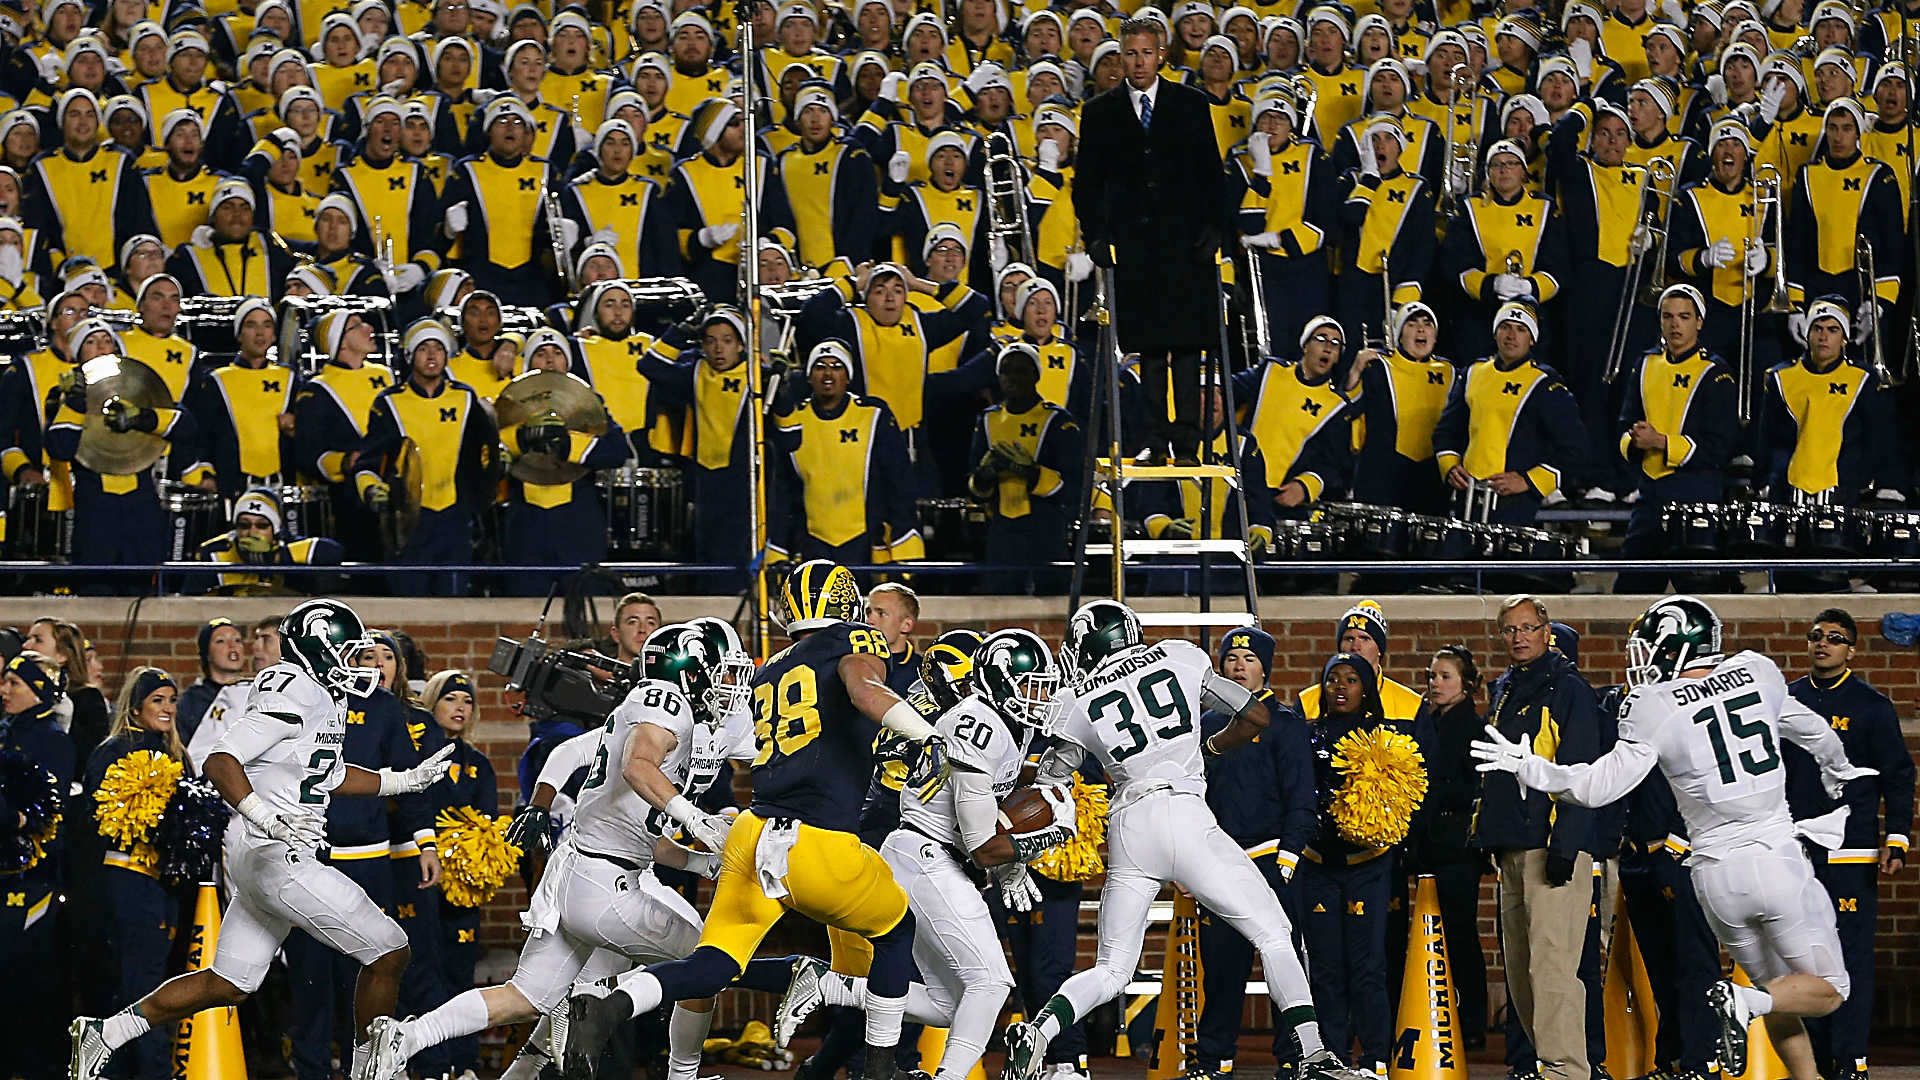 Kordell Stewart, App State and more: Michigan's most heartbreaking football losses